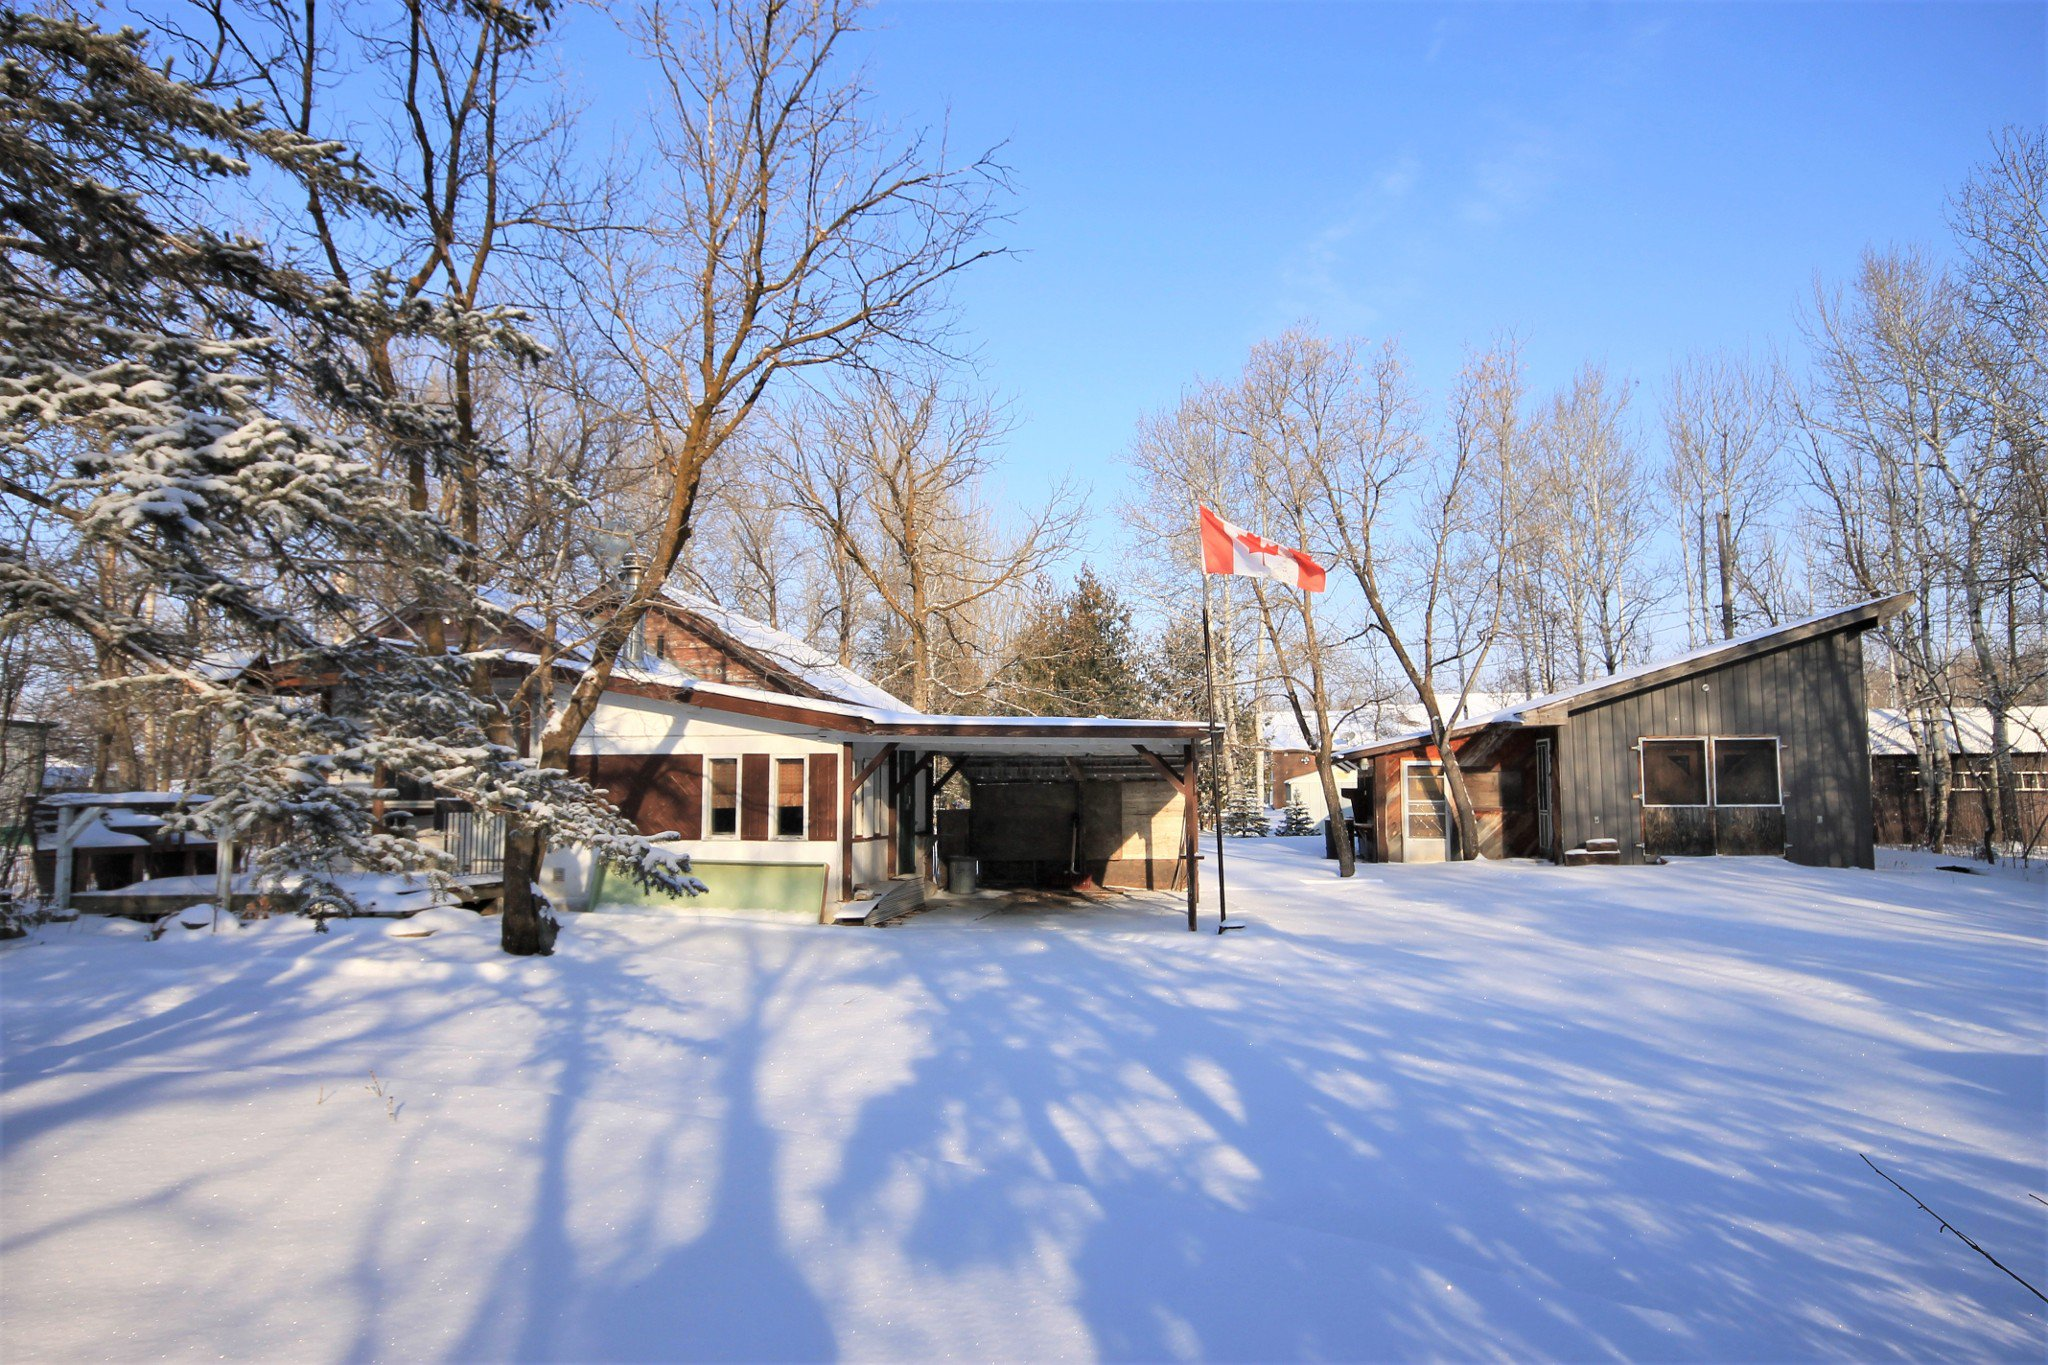 Main Photo: 54 Tetrault Drive in St Malo: Residential for sale (R17)  : MLS®# 202001119